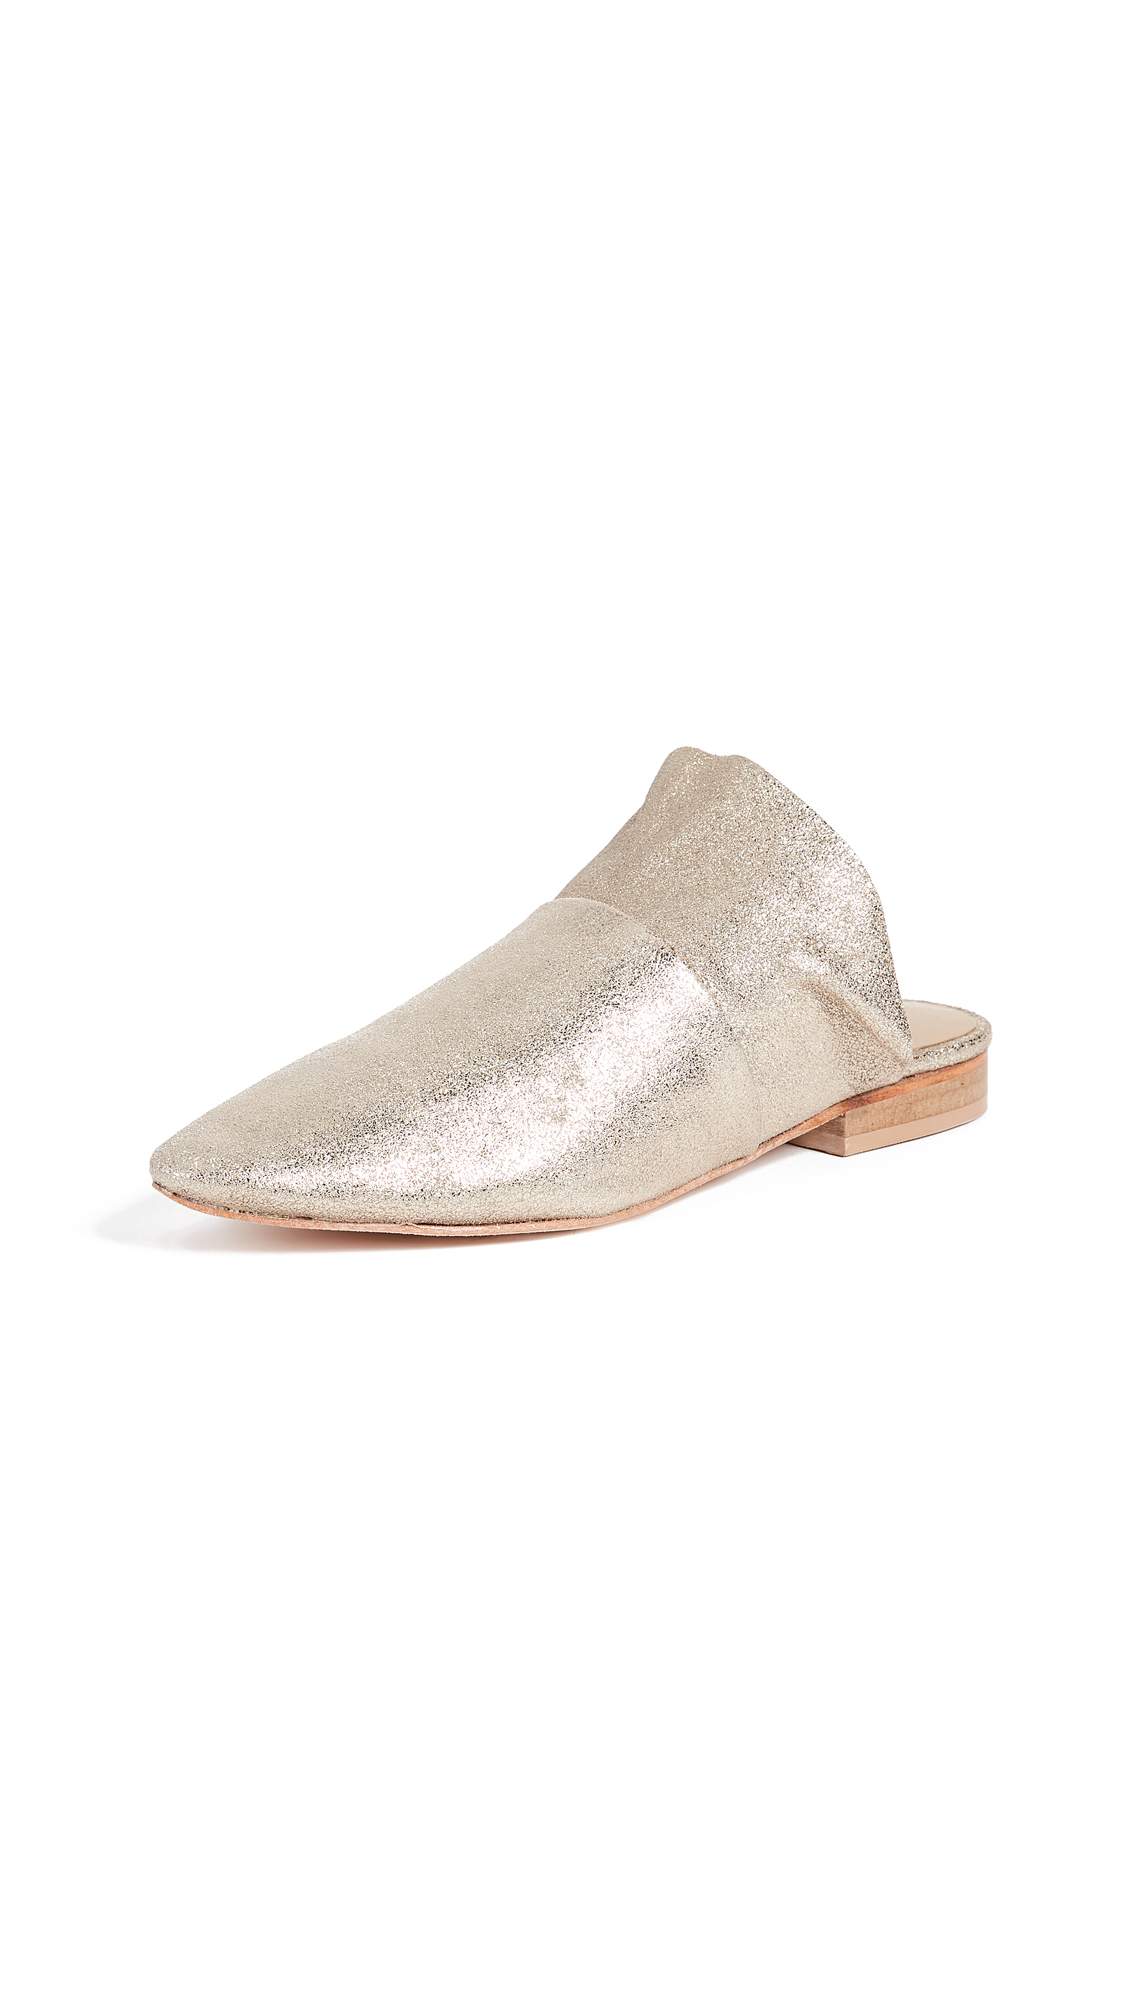 Free People Sienna Slip On Flats - Gold